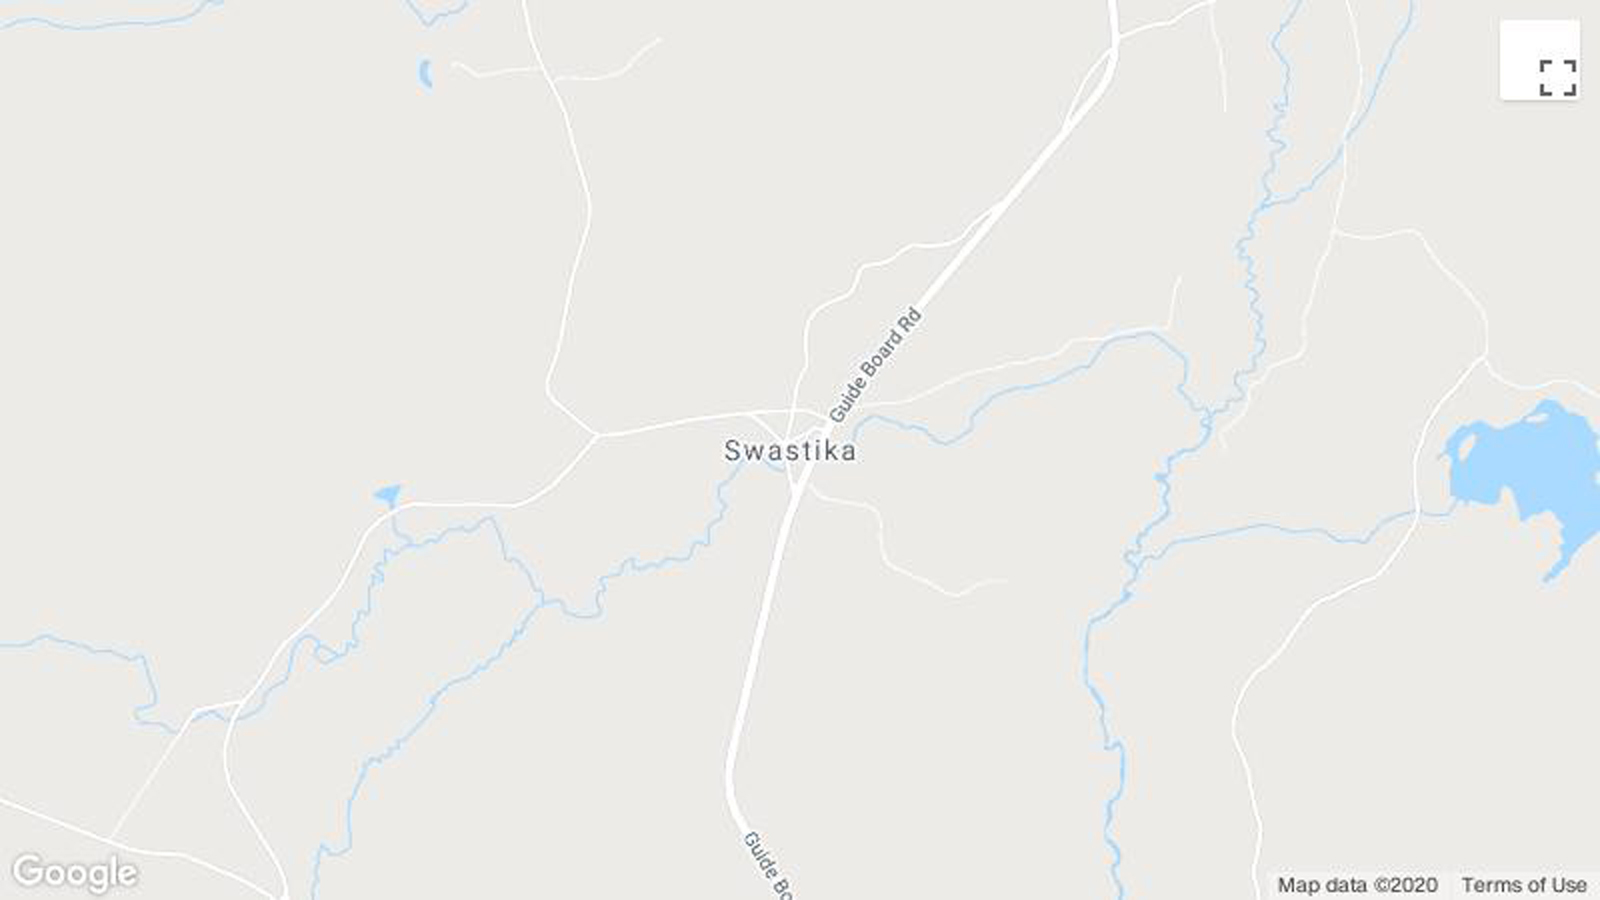 The New York town of Swastika votes to keep its name